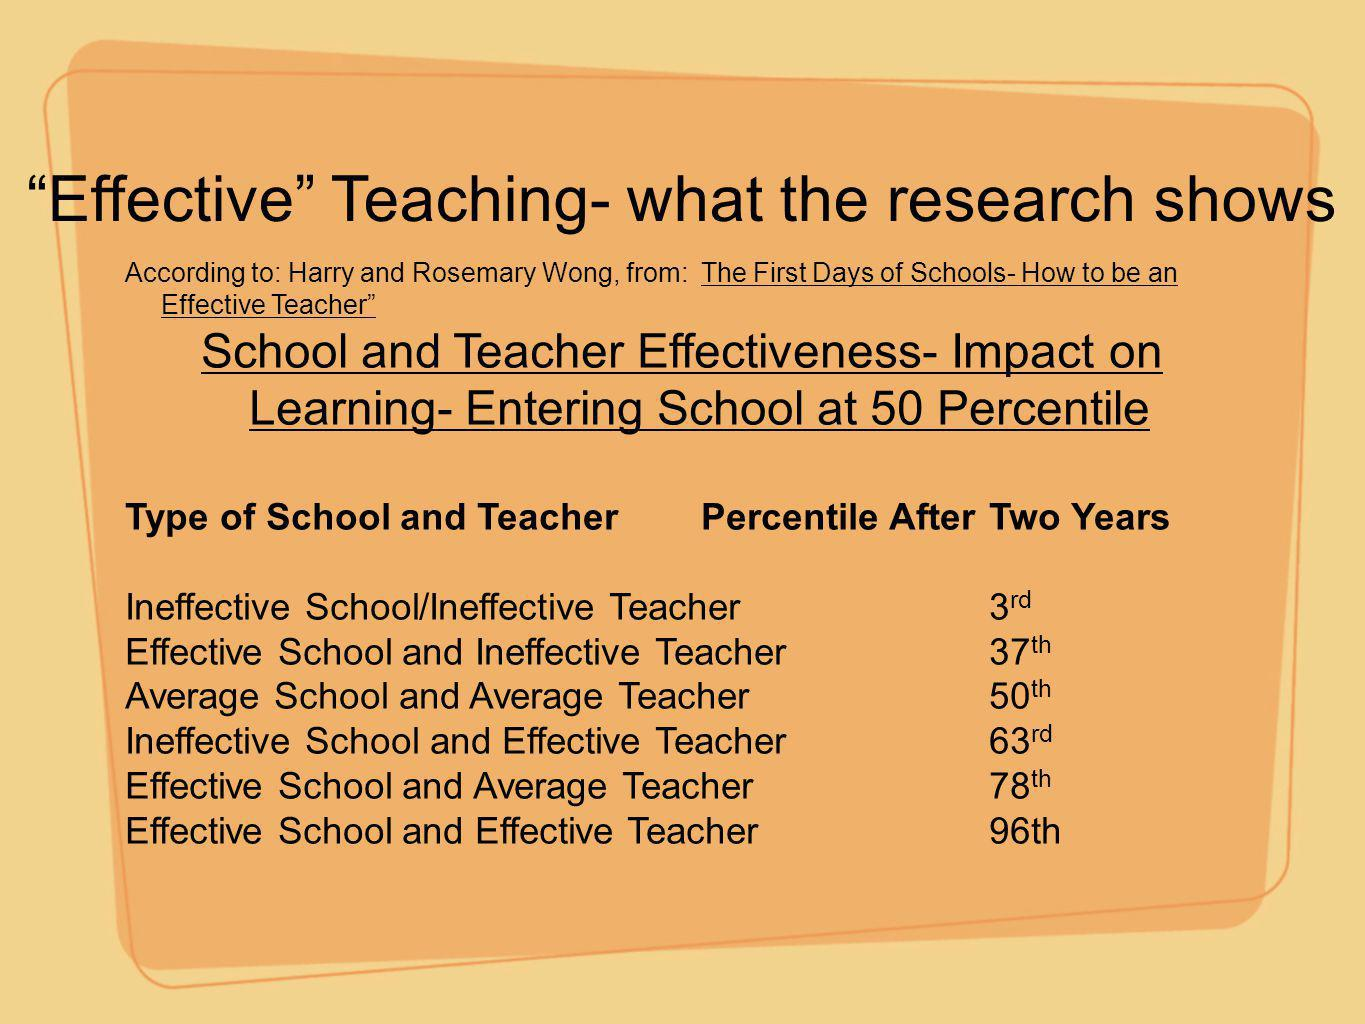 Effective school research